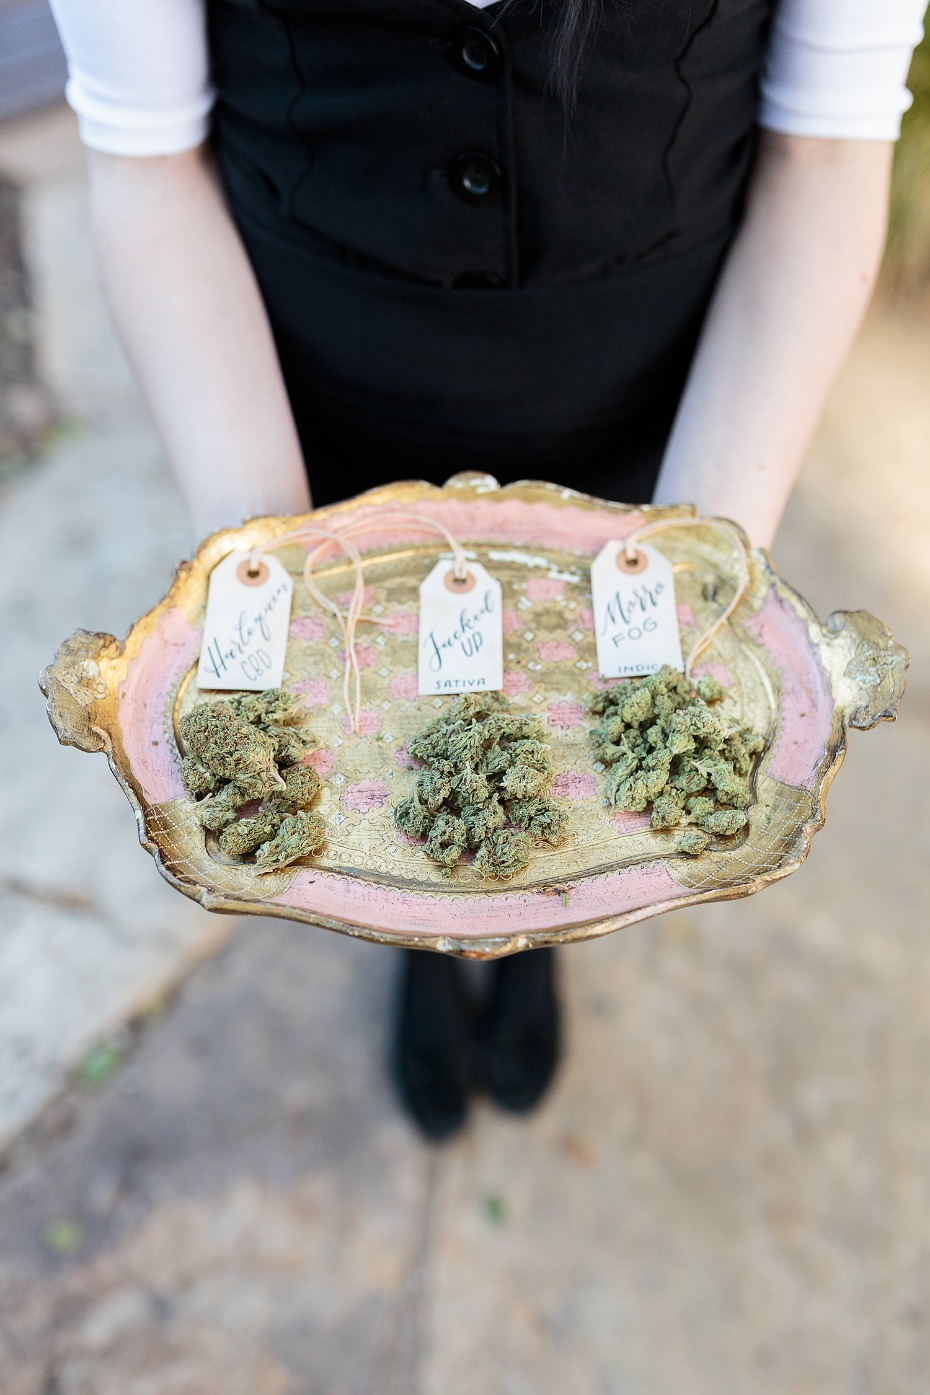 Cannabis infused wedding ideas